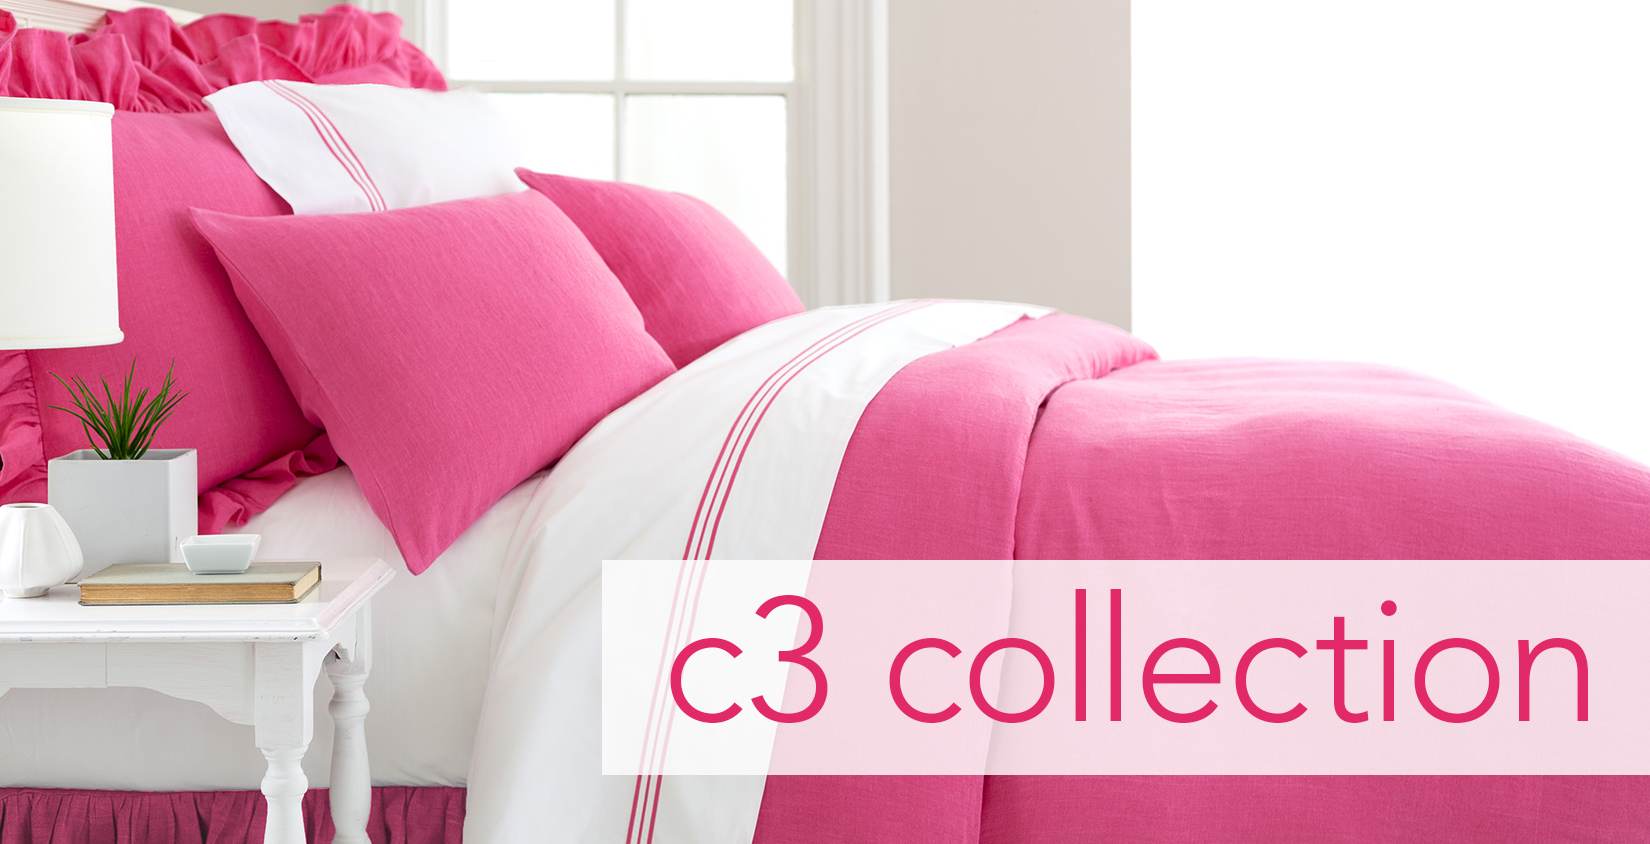 C3 Collection